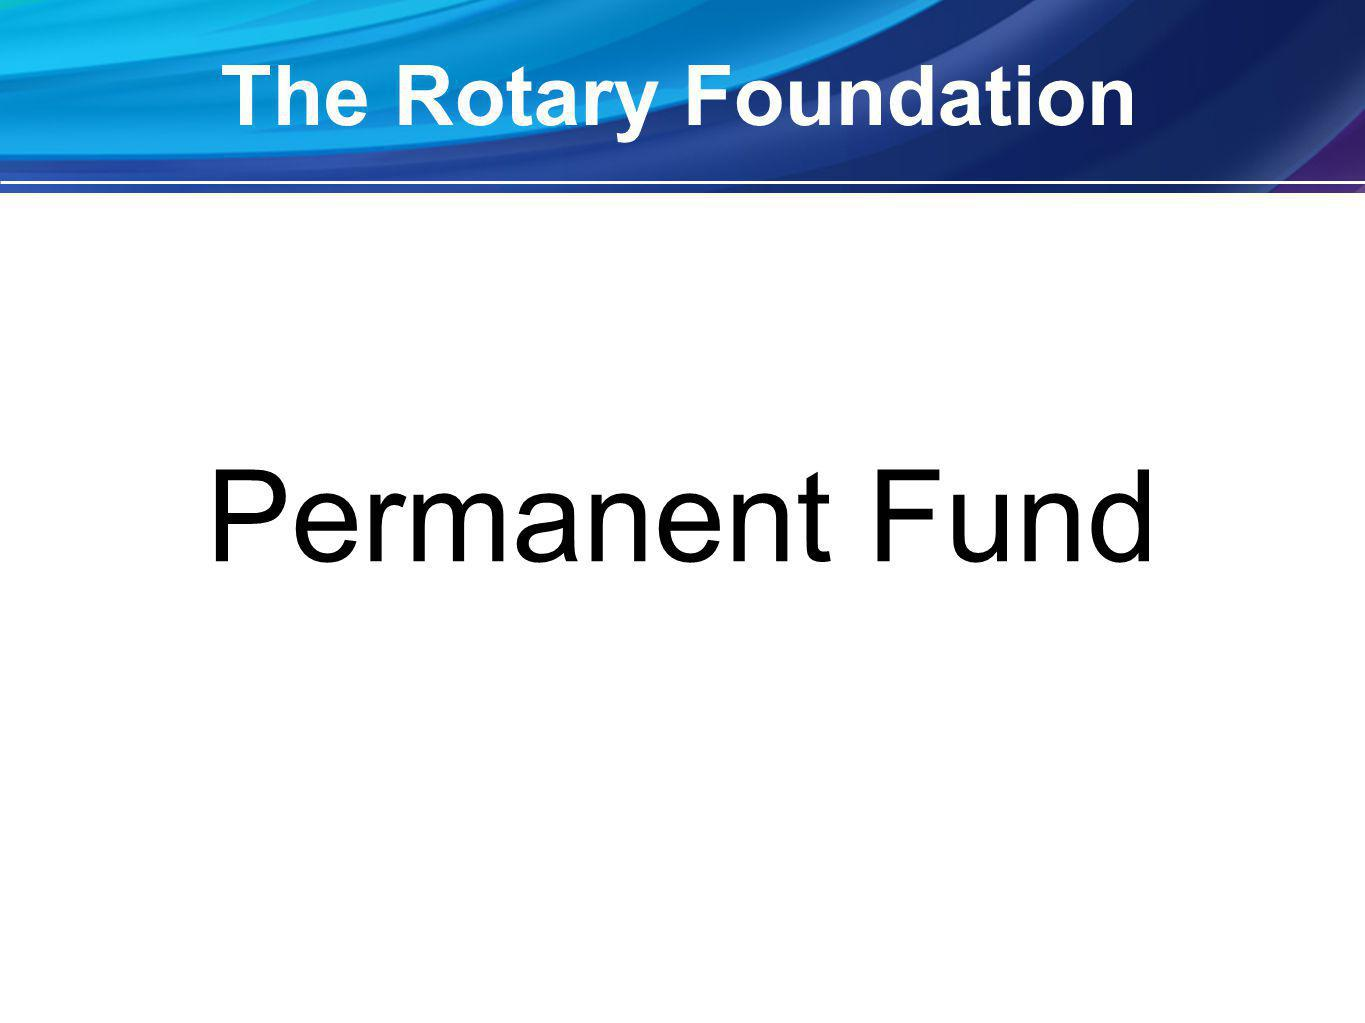 Permanent Fund The Rotary Foundation